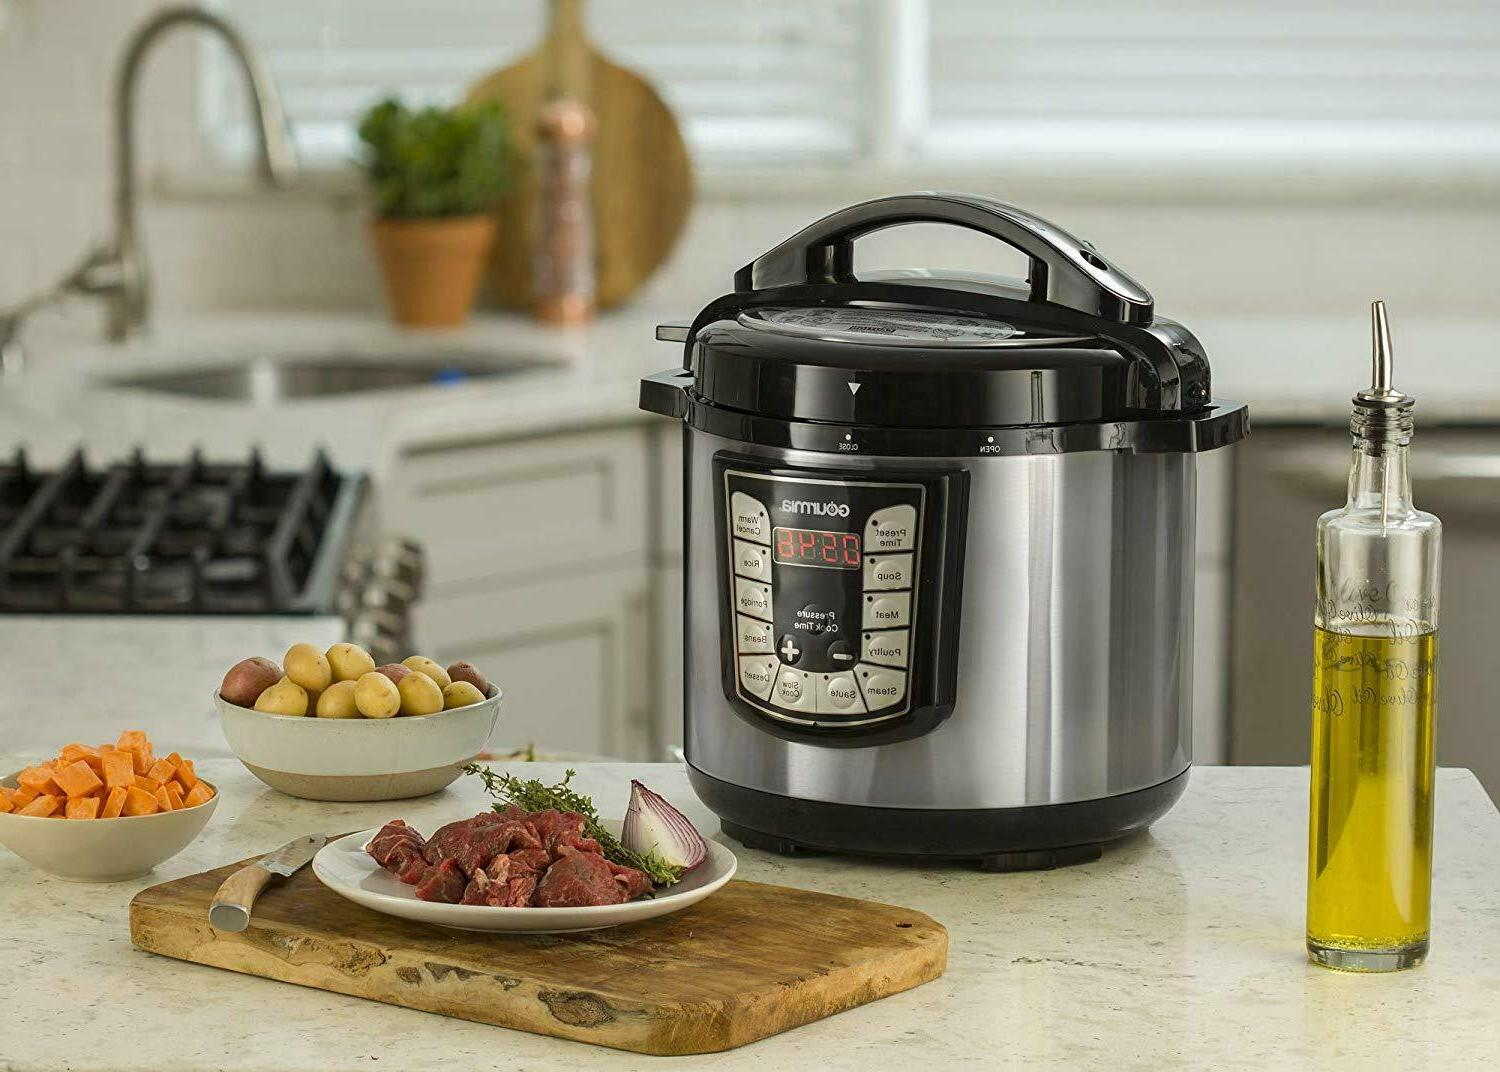 Gourmia 7-in-1 Programmable Cooker Slow